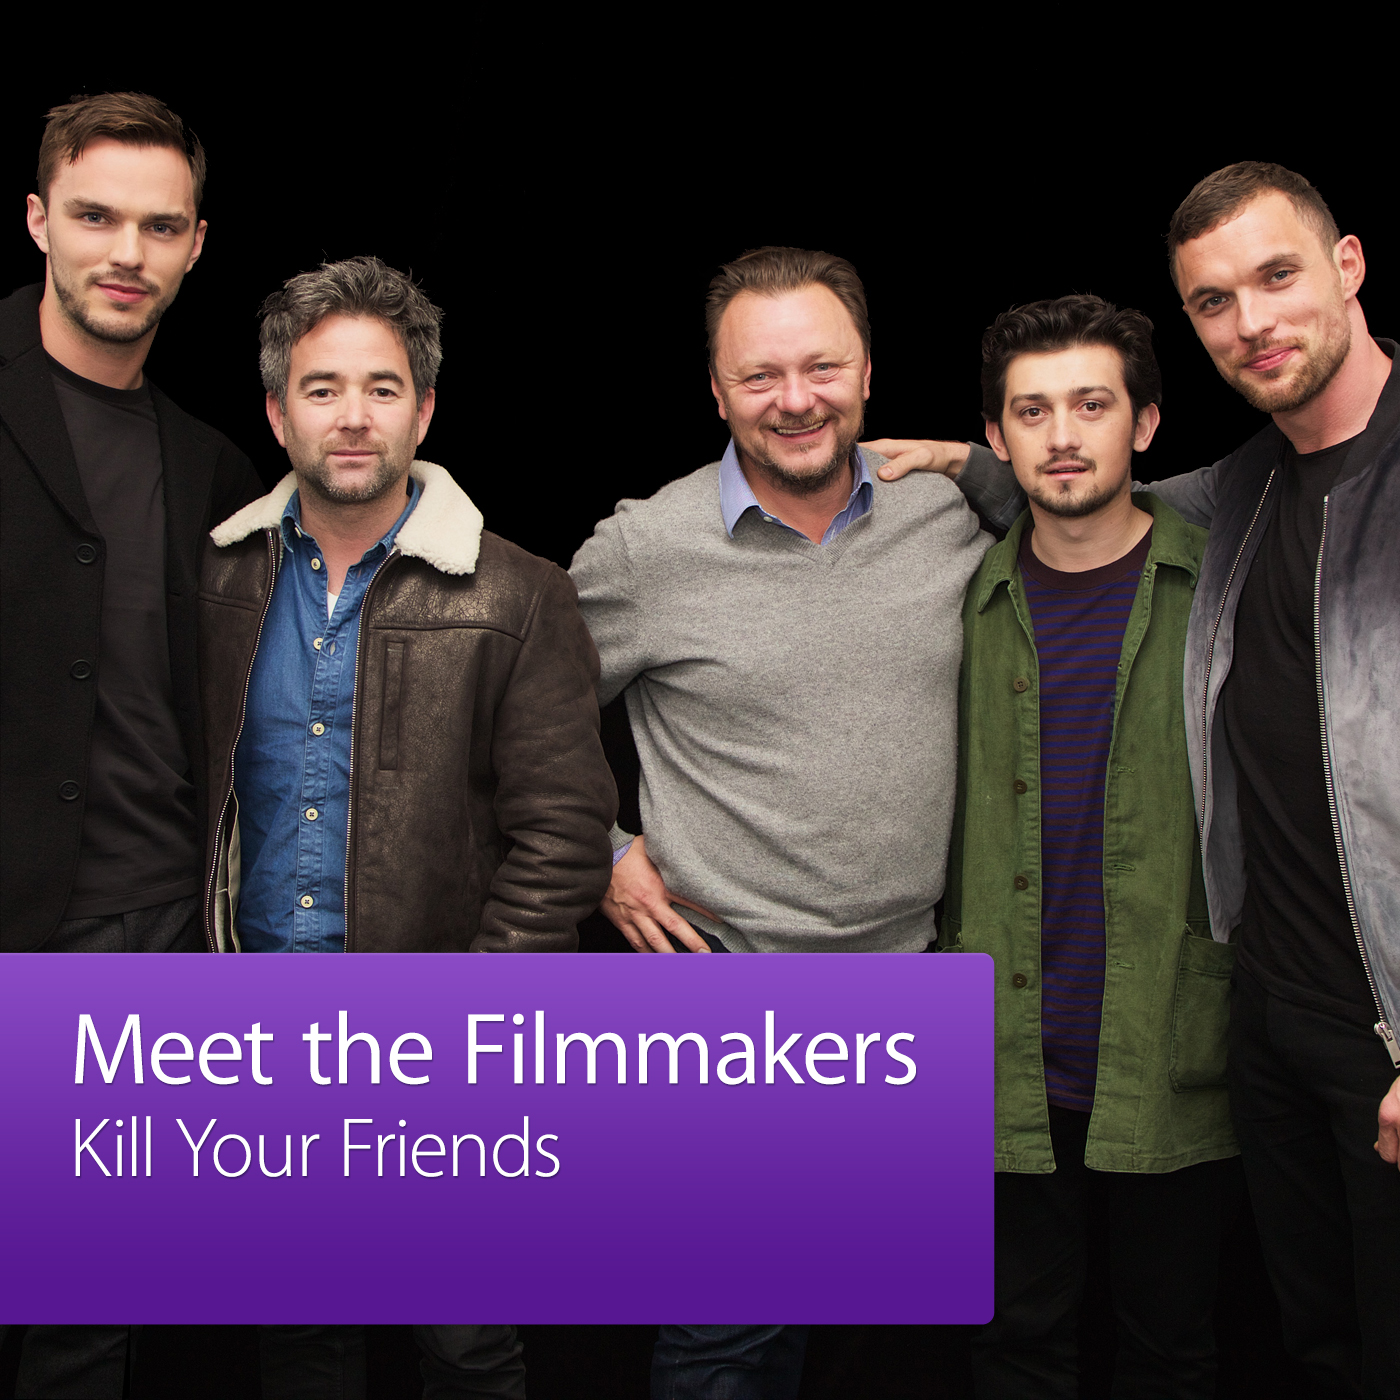 Kill Your Friends: Meet the Filmmakers